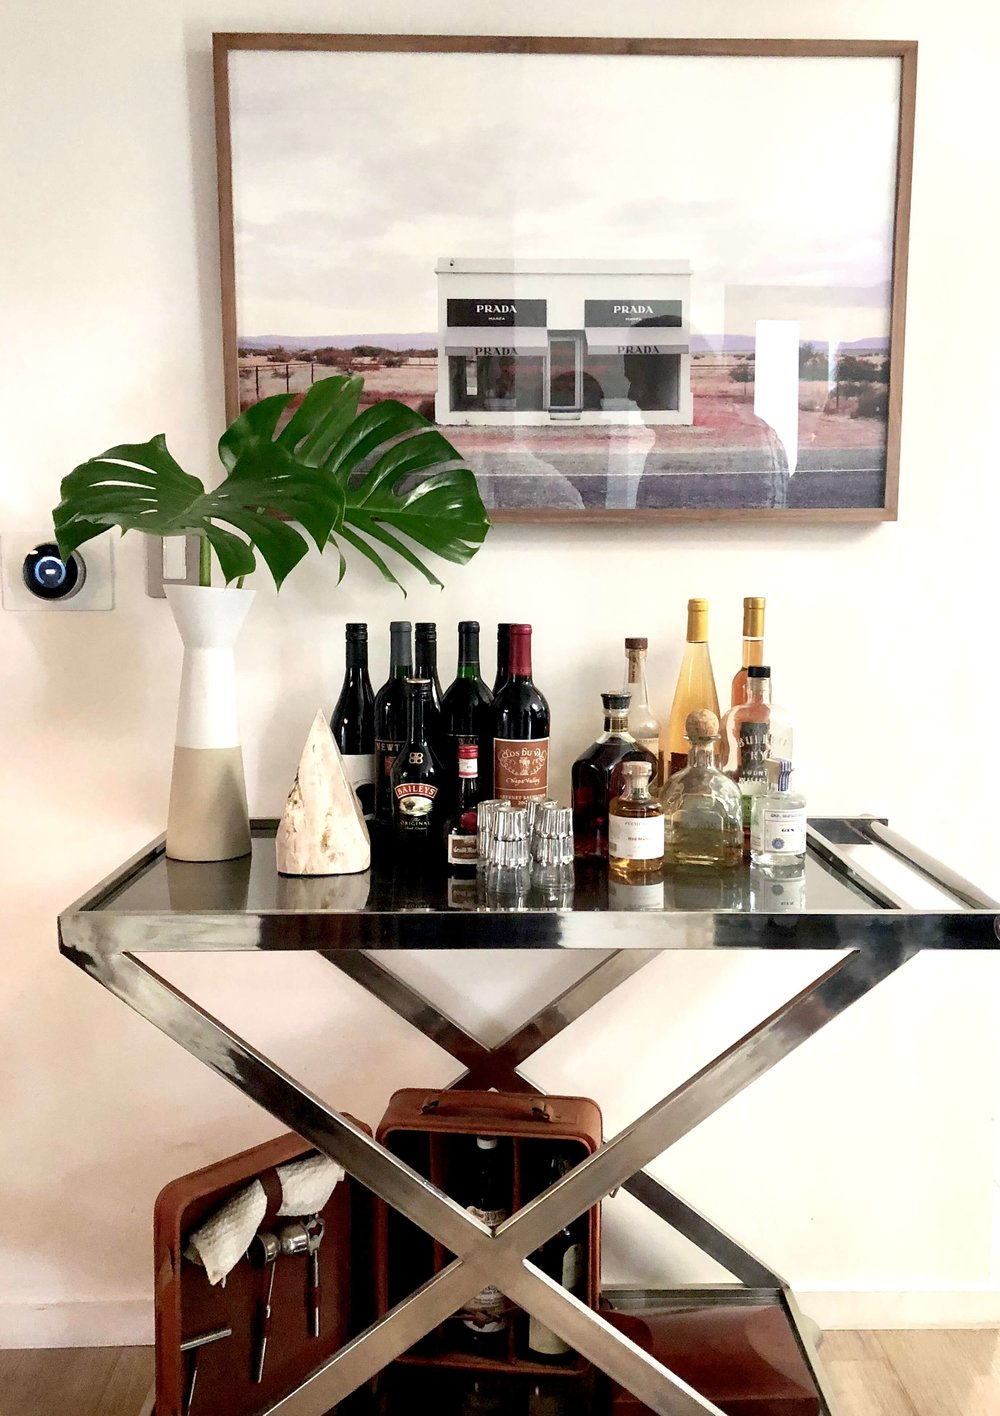 Well stocked bar cart seen at Dwell on Design's home tours